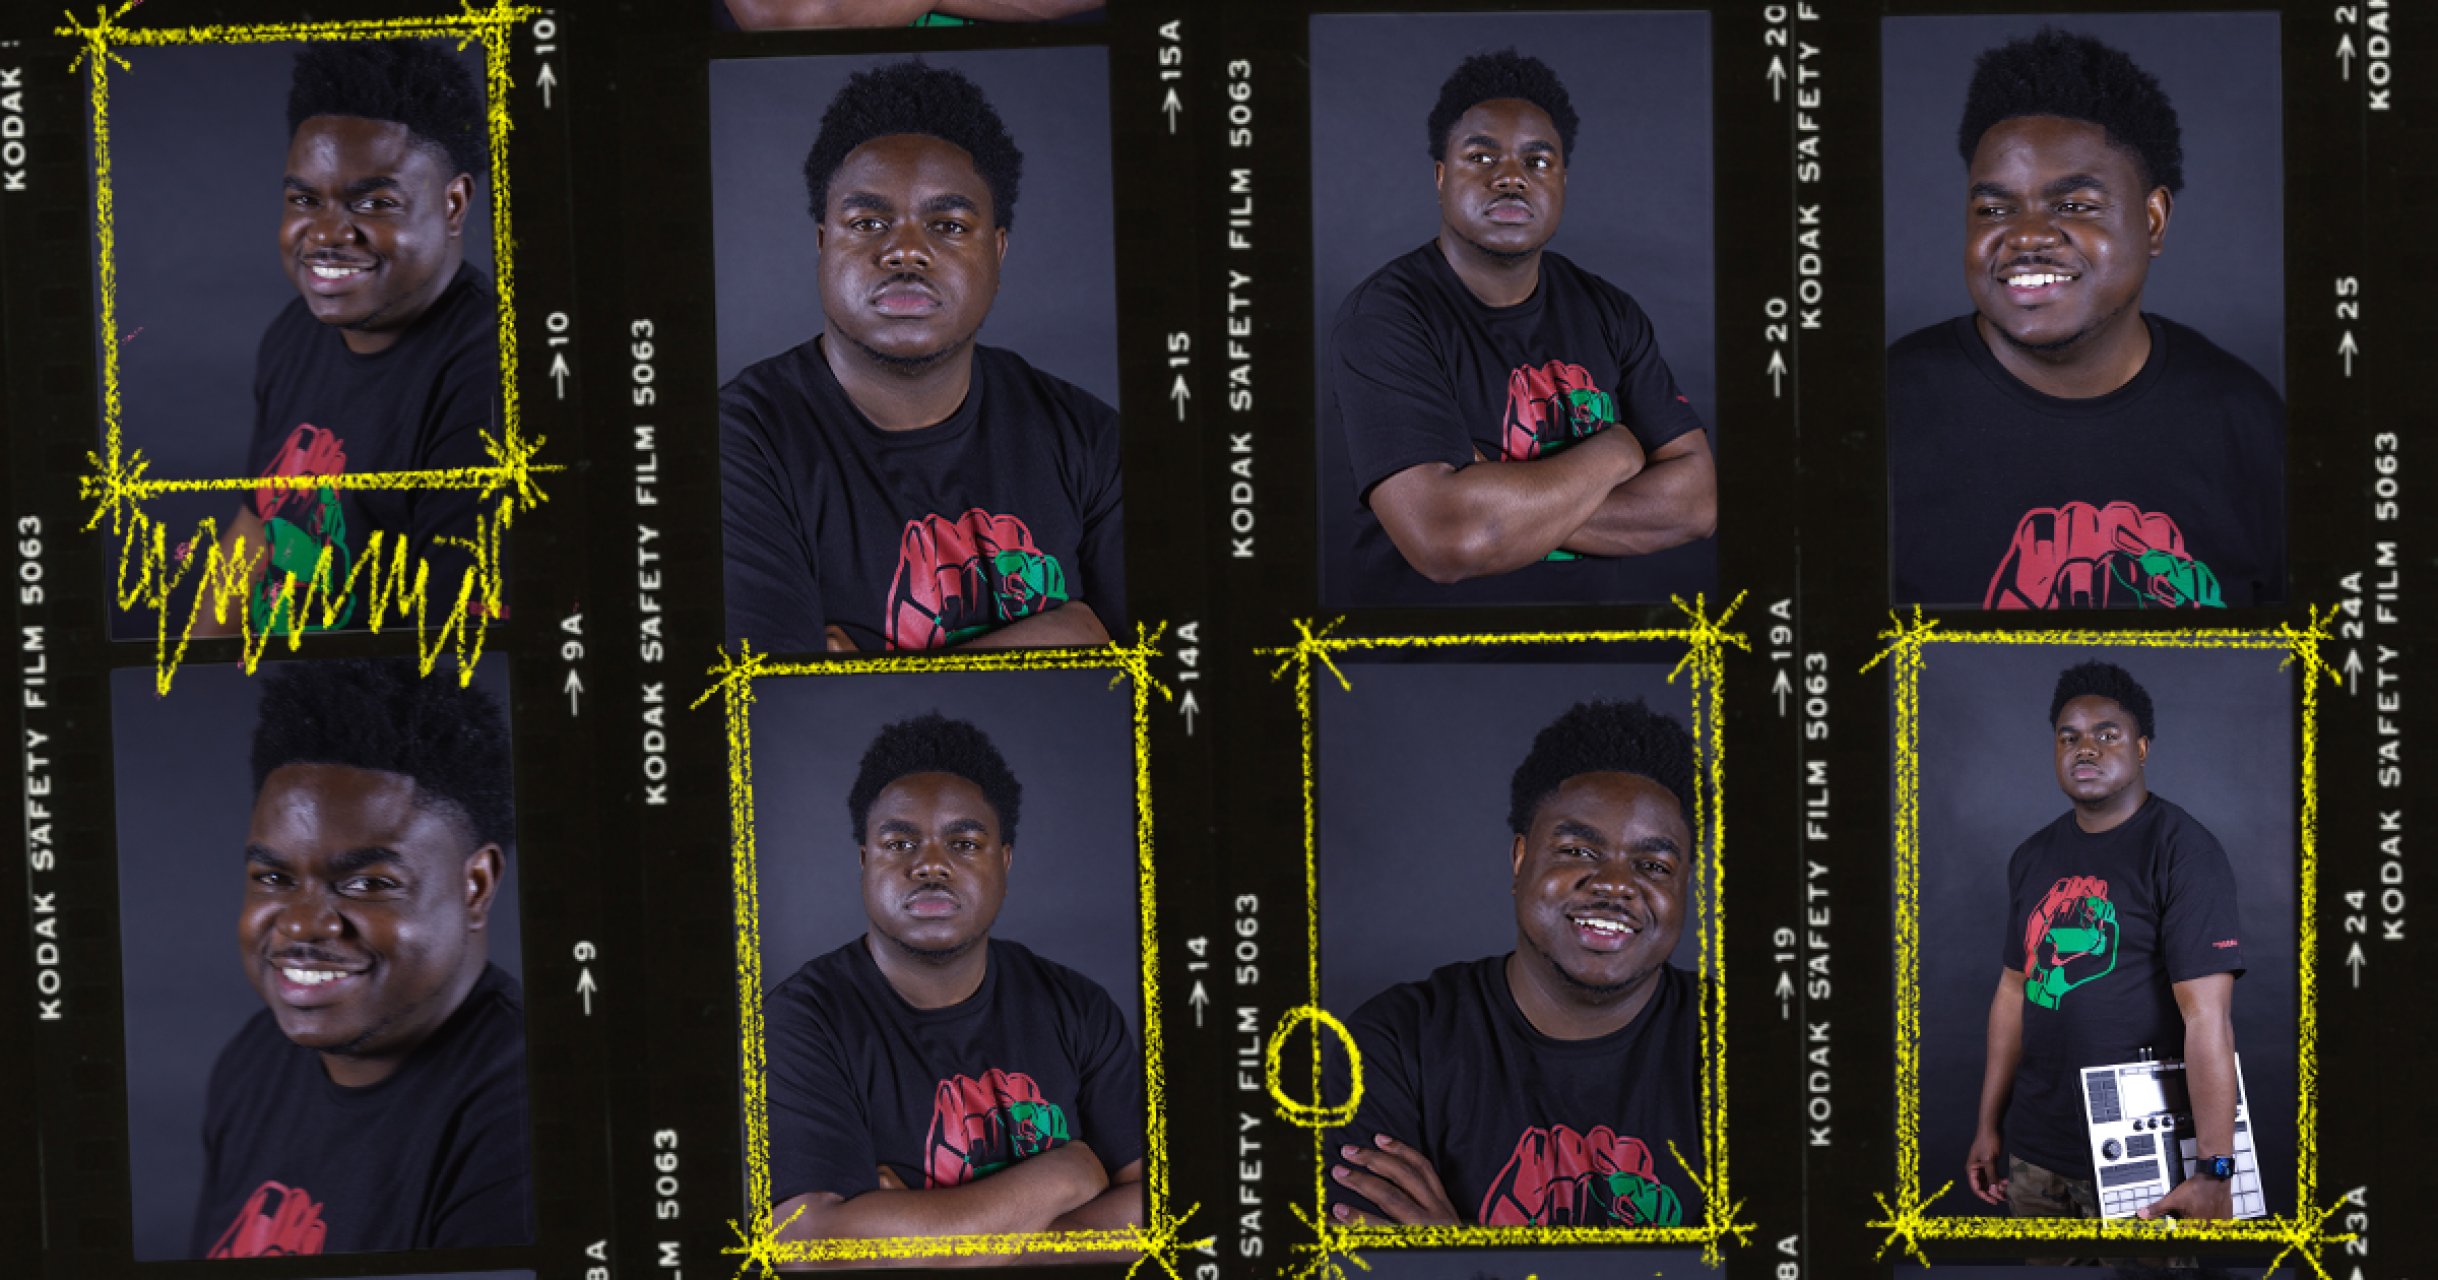 8 photos of Kashif Norville arranged in strips of film